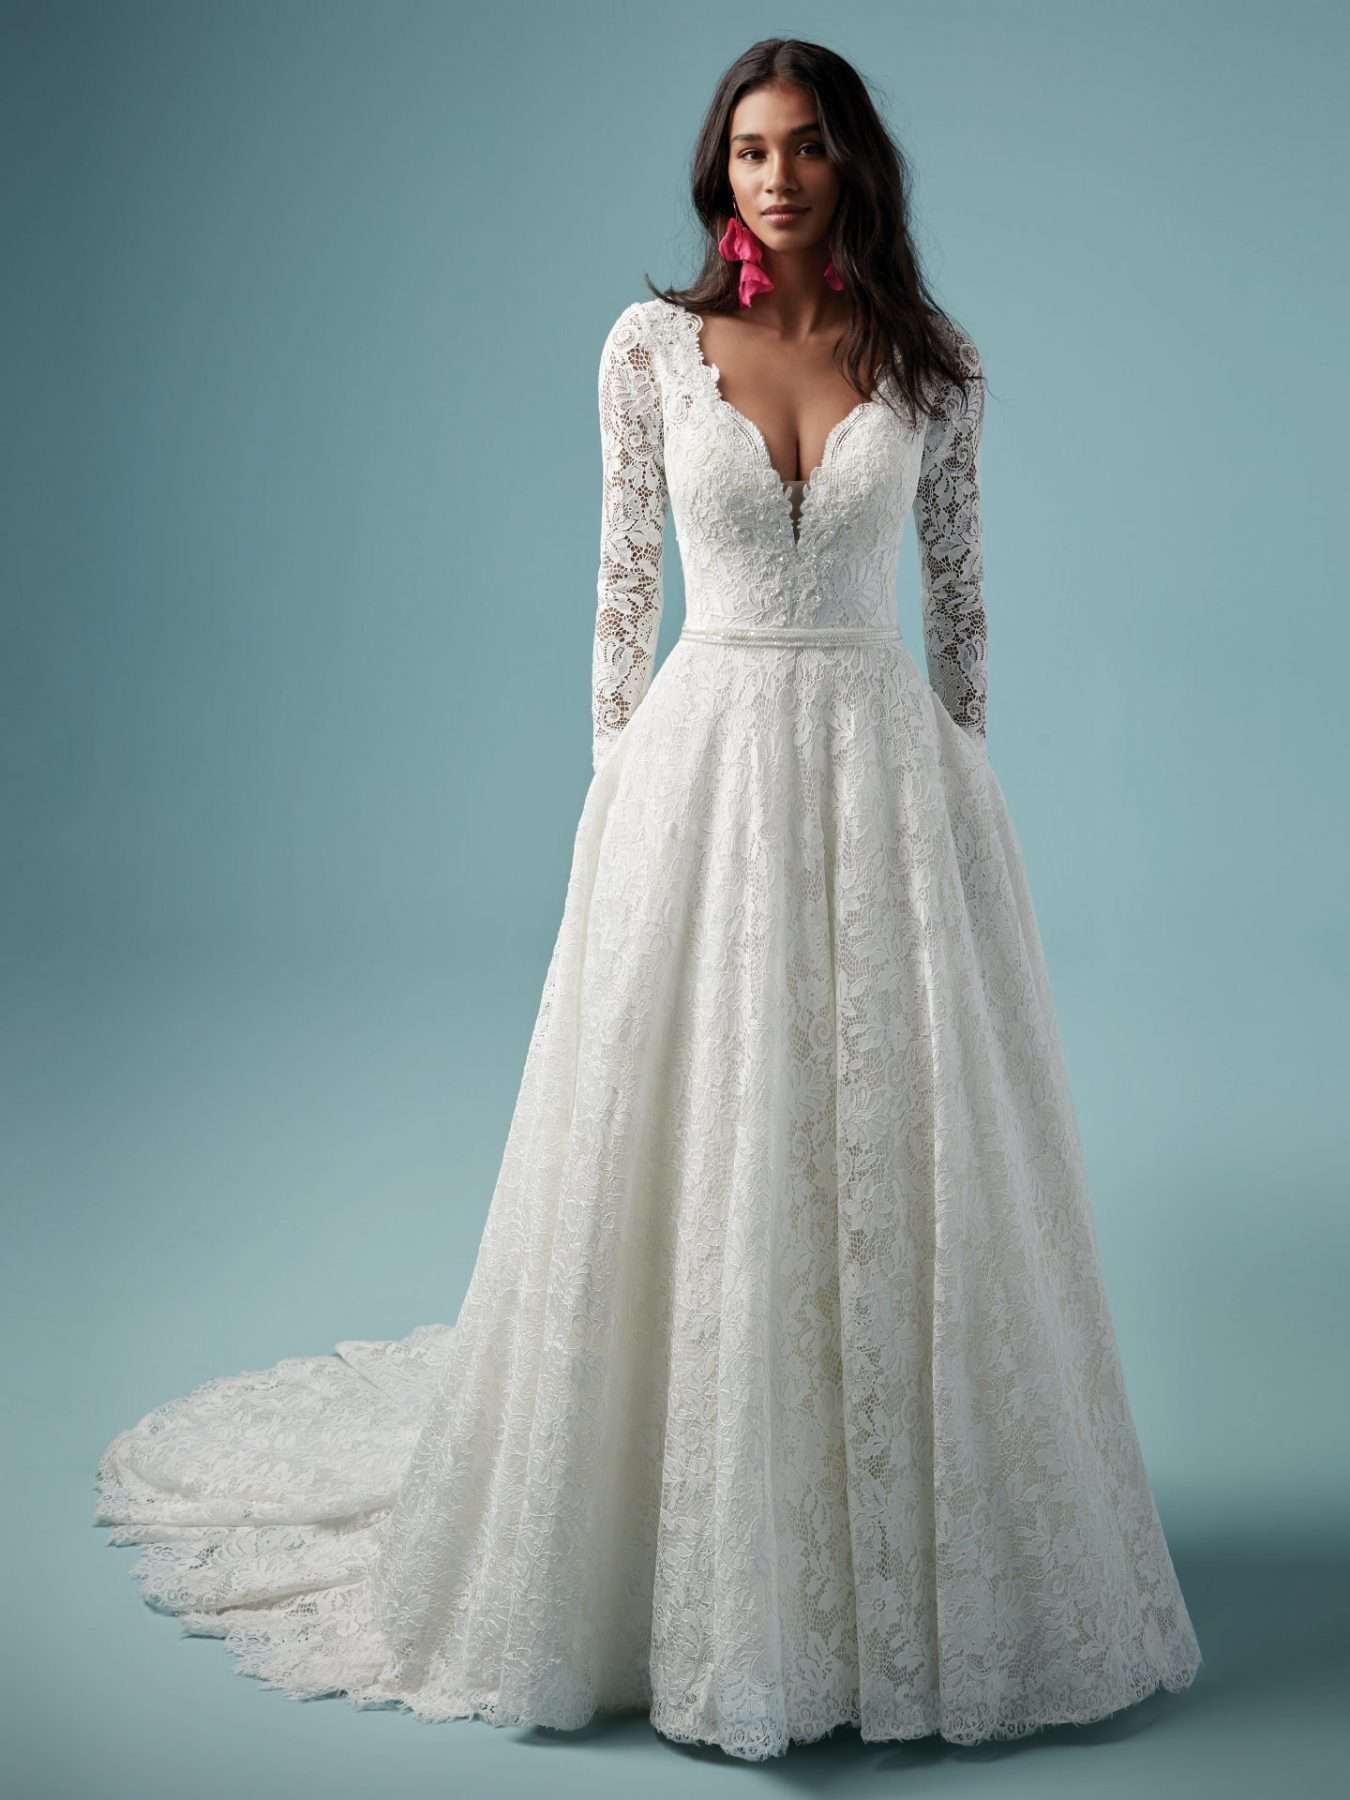 Model in long-sleeve lace wedding gown with pockets